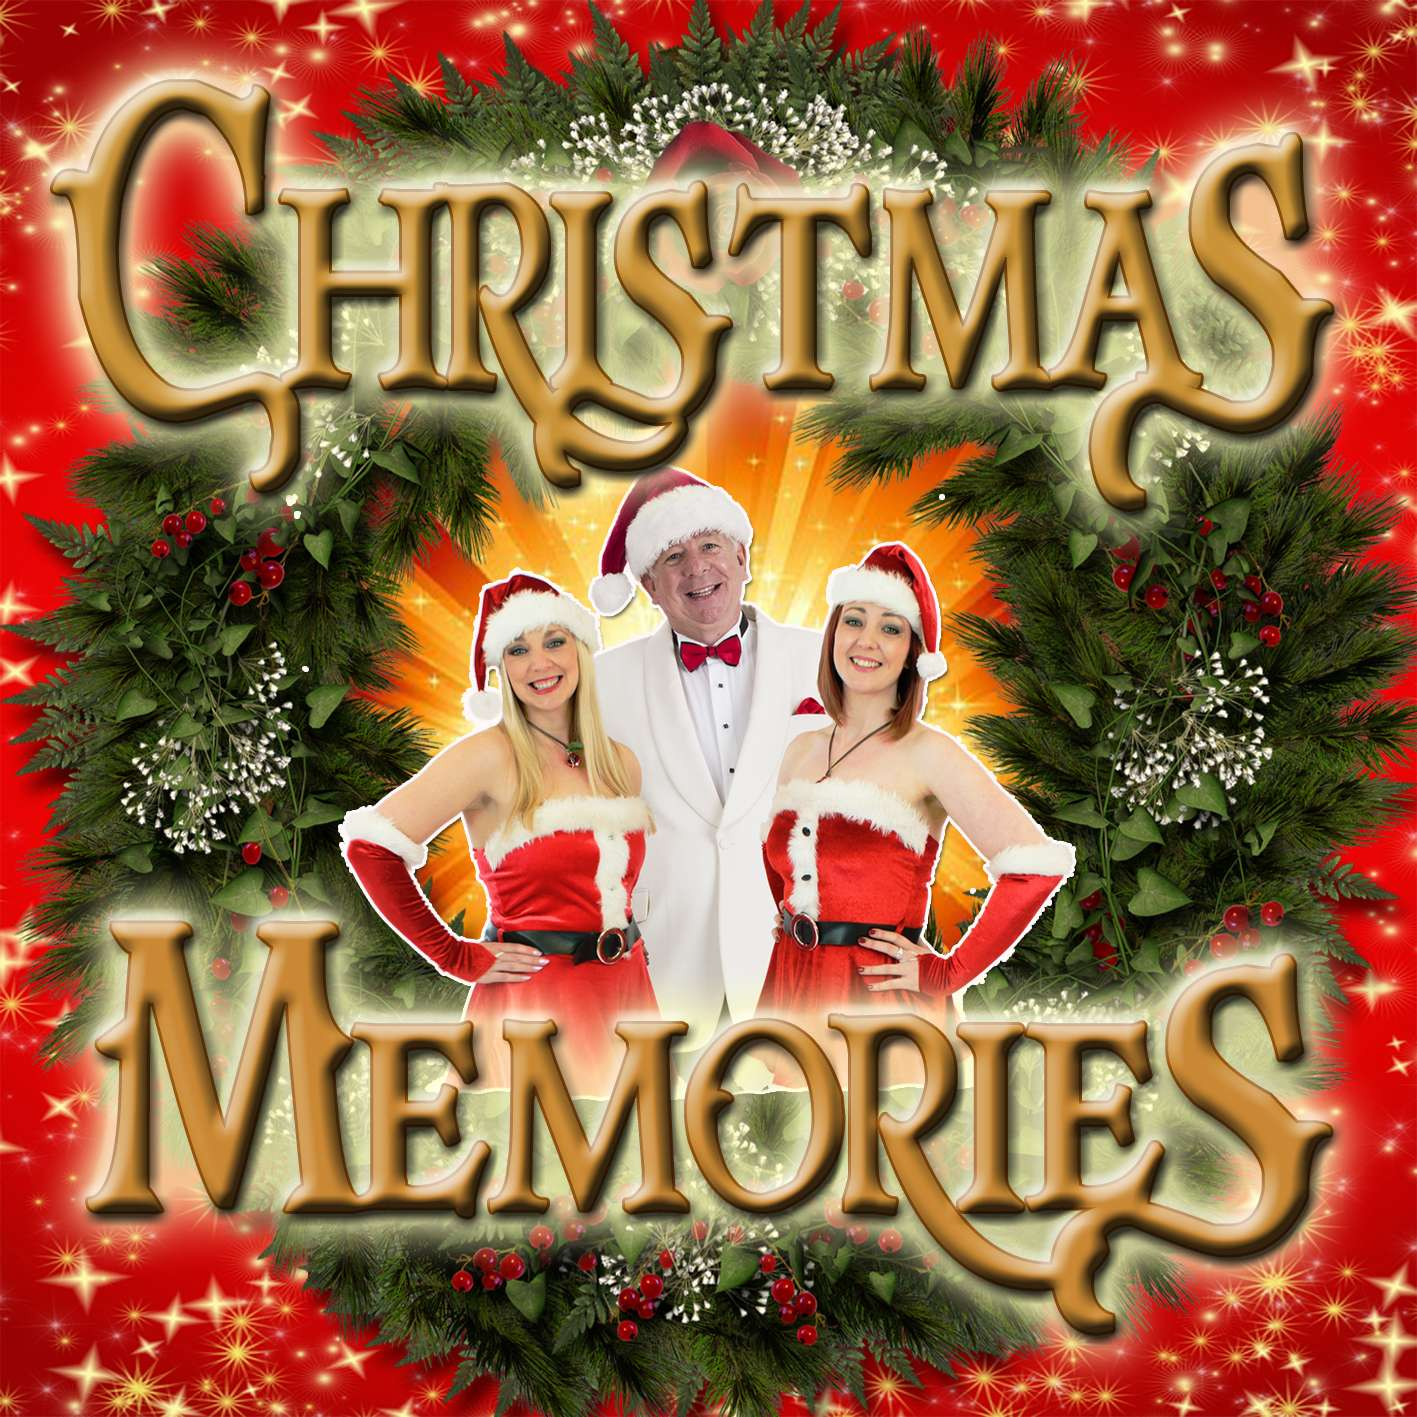 Christmas Memories.Christmas Memories At Northwich Memorial Court Event Tickets